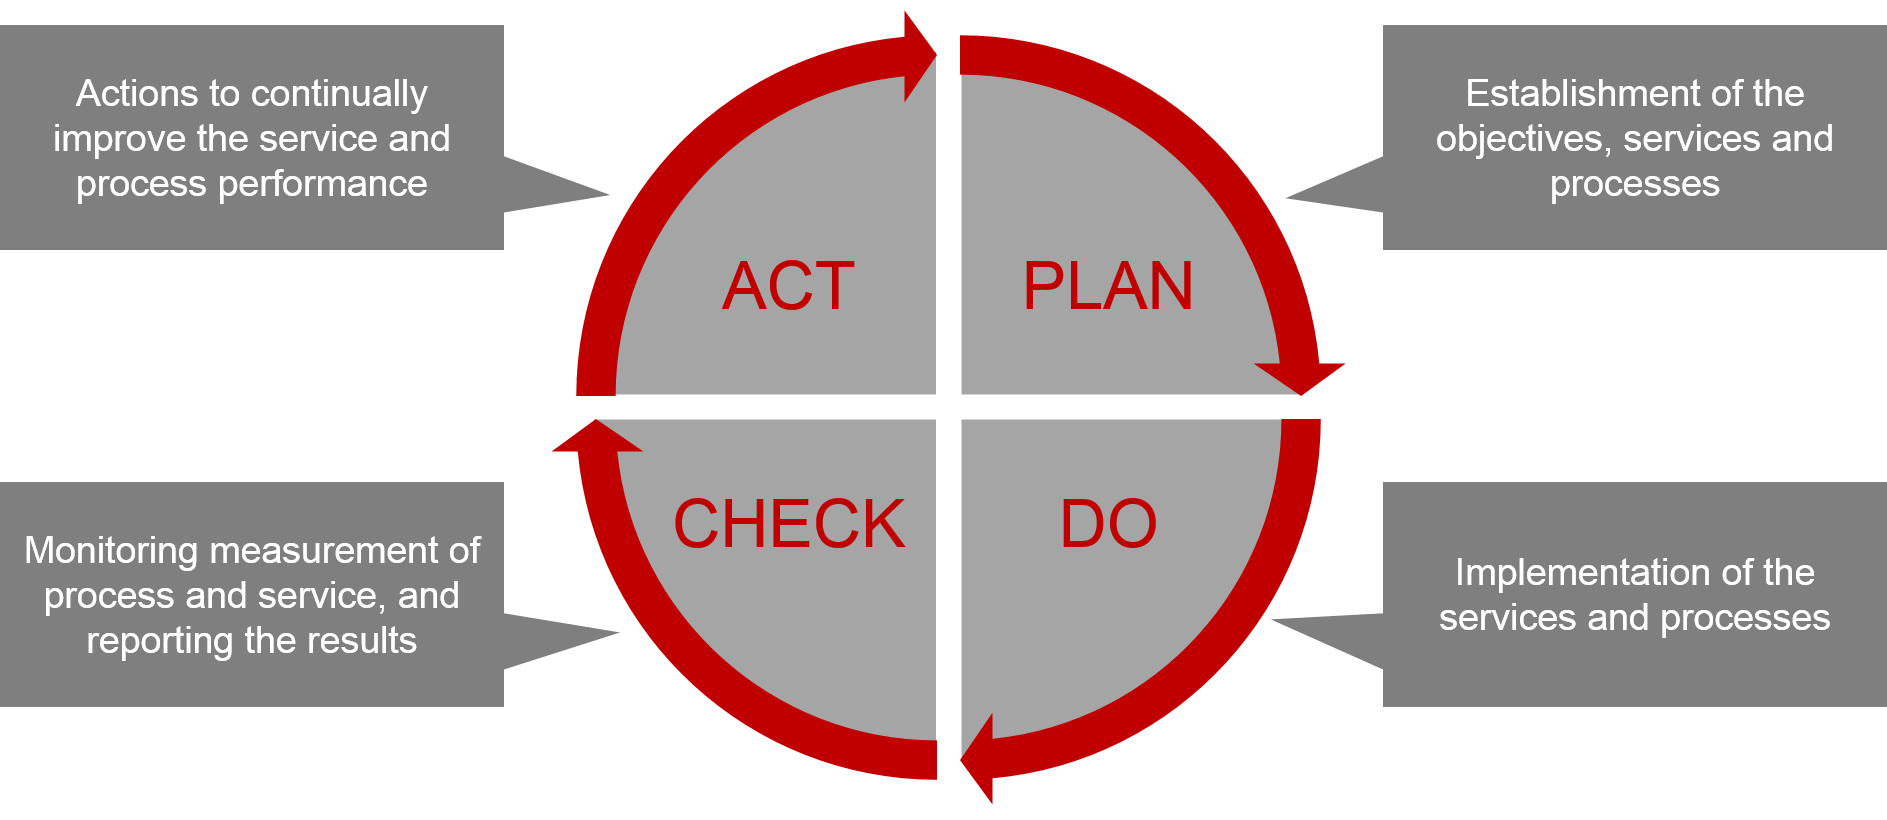 The Deming Cycle for a continual service and process improvement